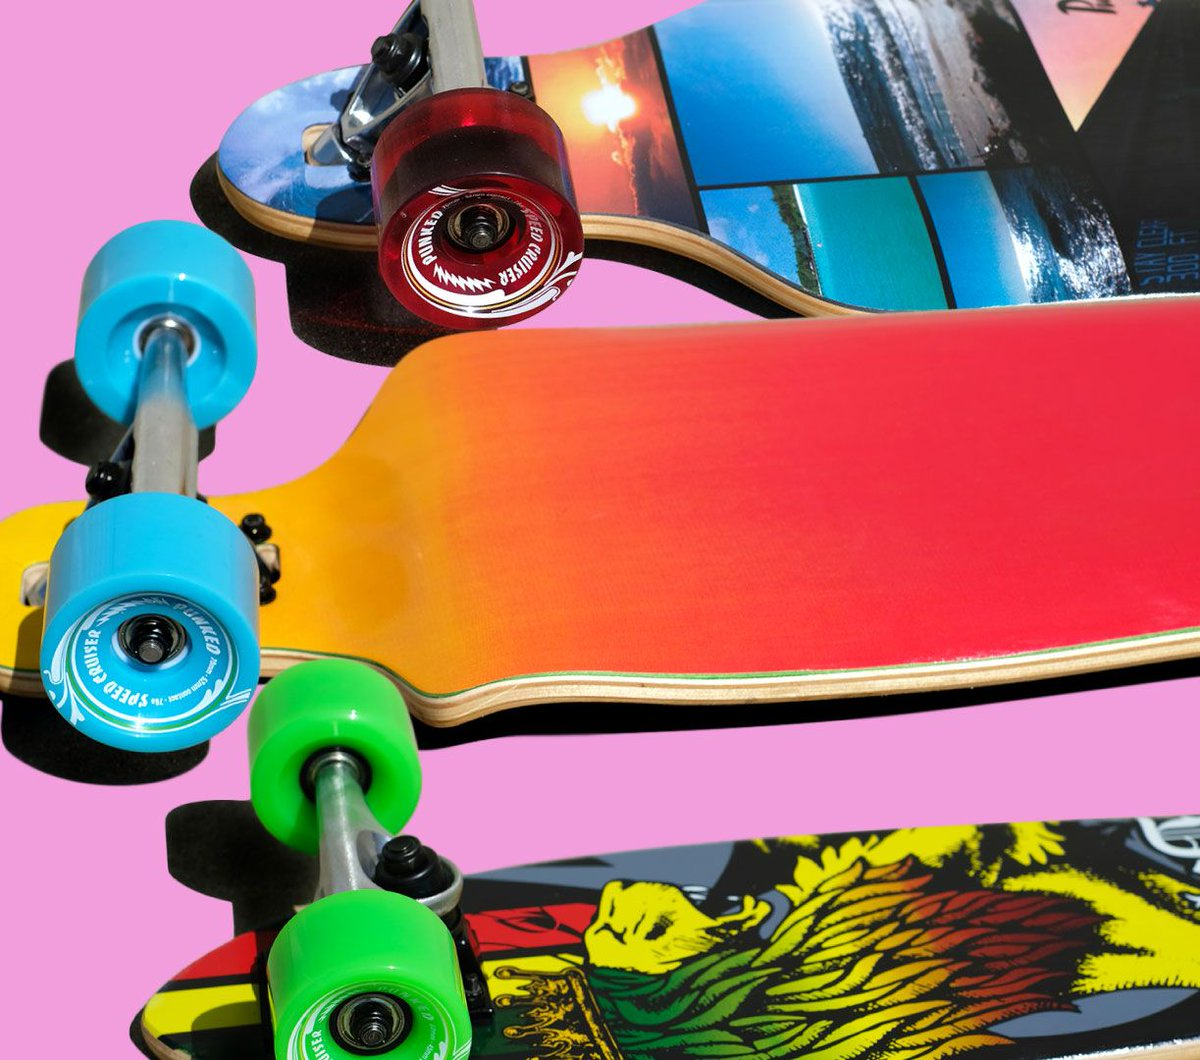 Check out our Longboard Holiday Gift Guide  Swipe to see our featured boards ...  #yocaher #longboards #longboarding #longboarder #longboardingisfun #giftguide #giftideas #holidaygiftguide #skatelife #skateamericapic.twitter.com/t9dmsR46Cu